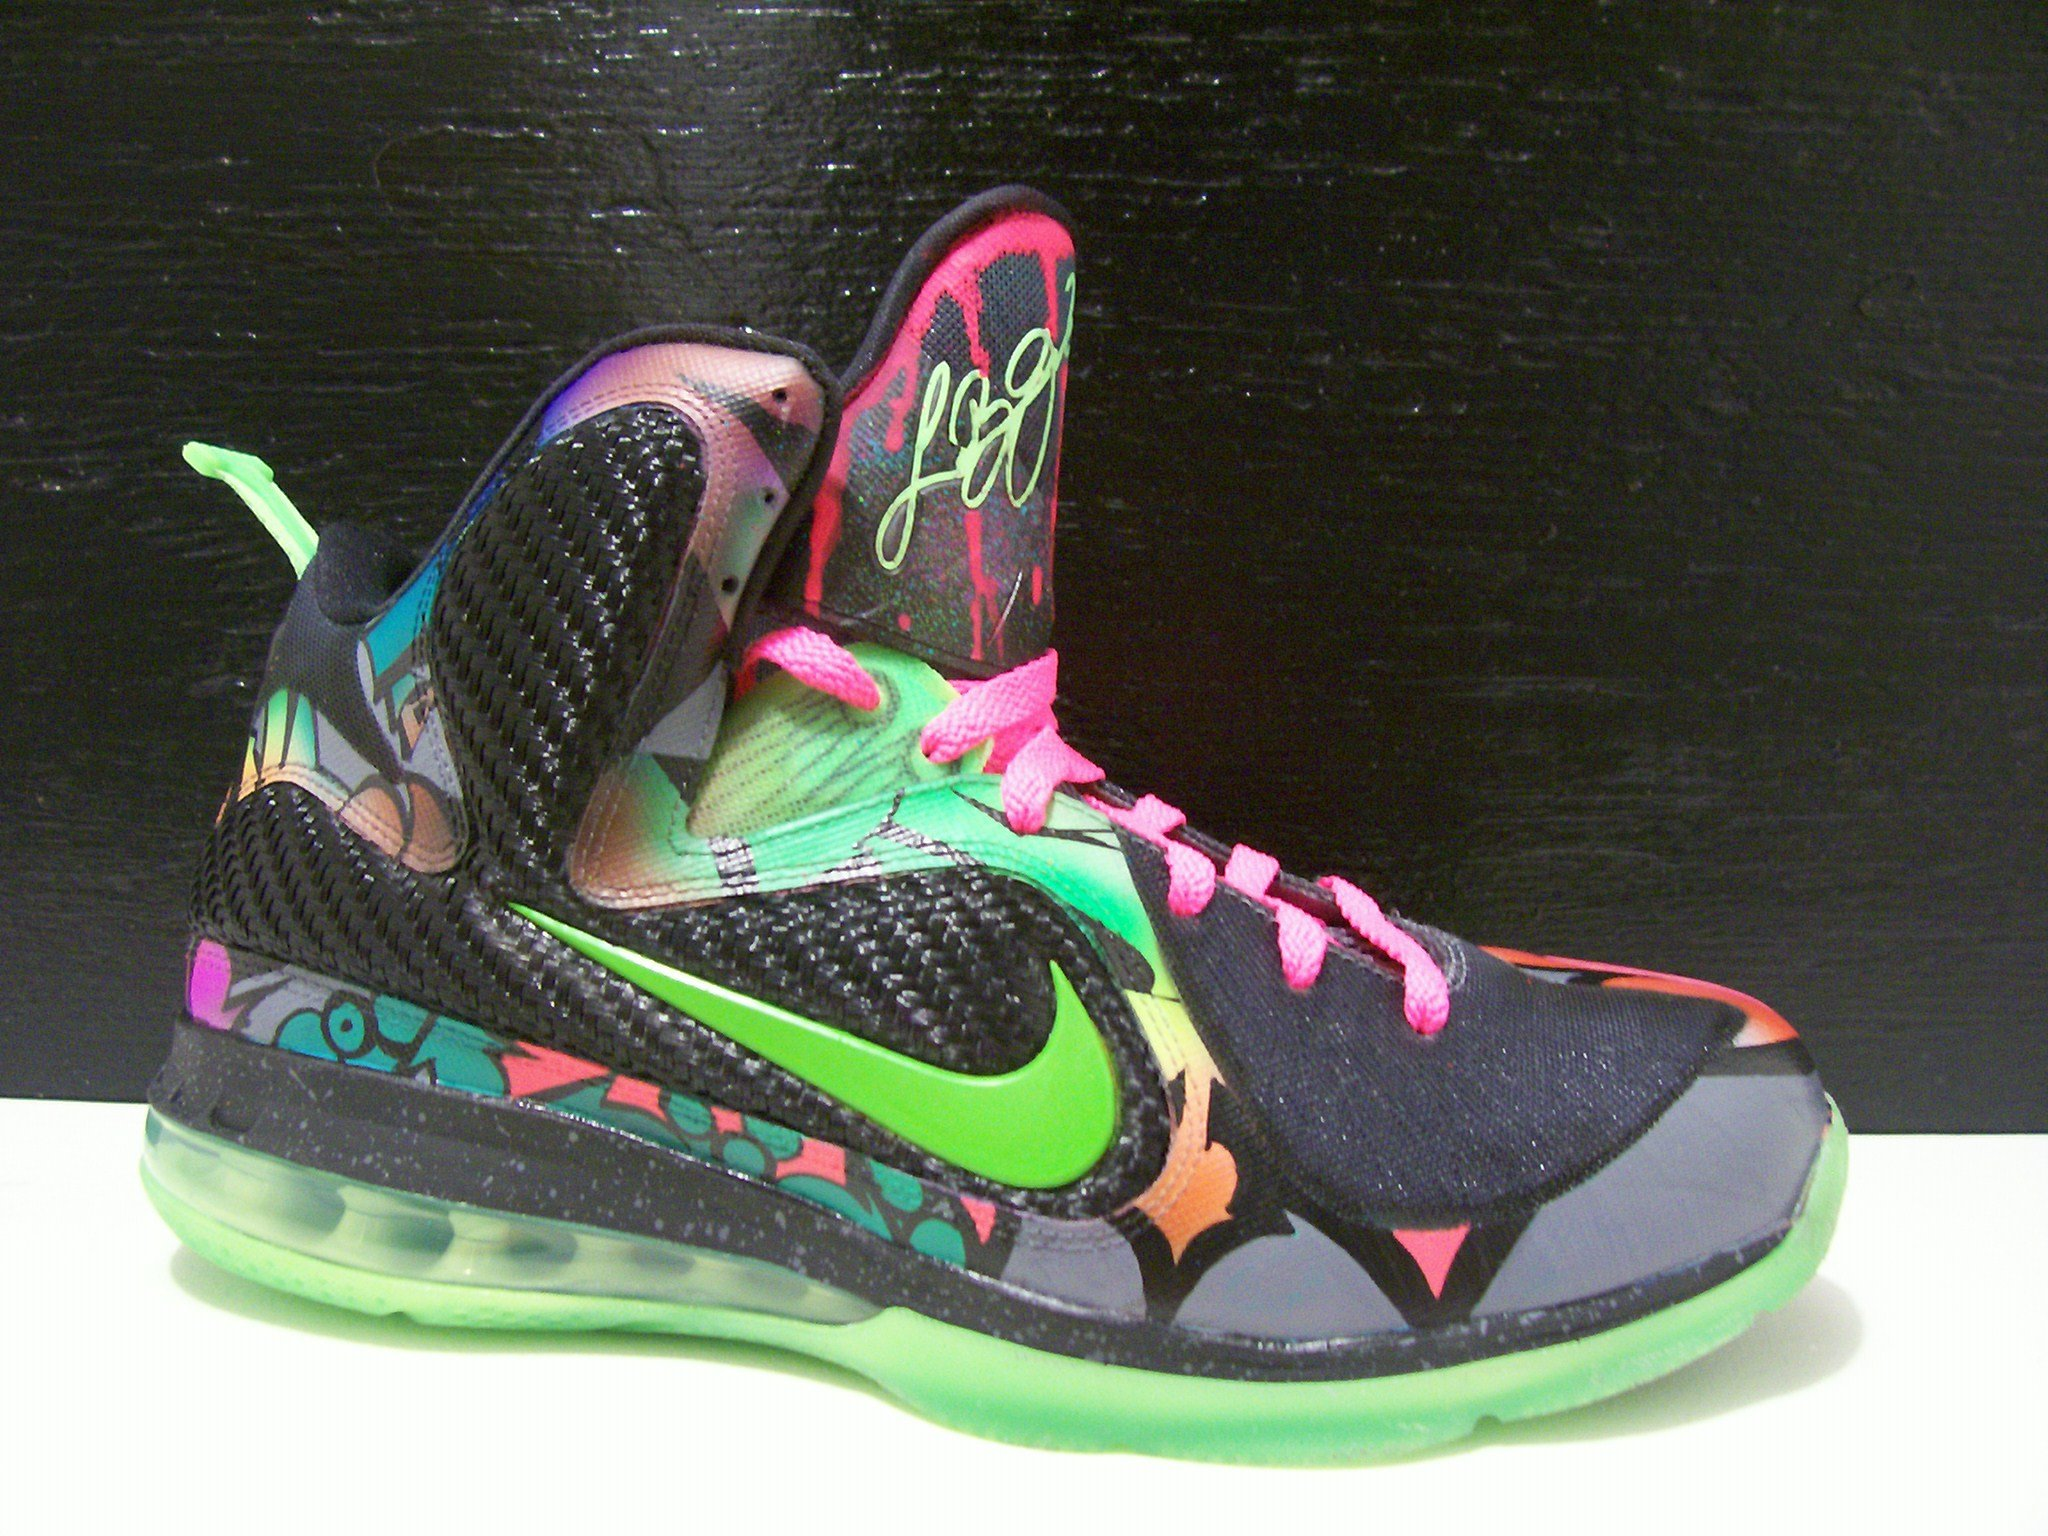 Nike LeBron 9 'Alley Art' Custom by Peculiar Kinetics ...